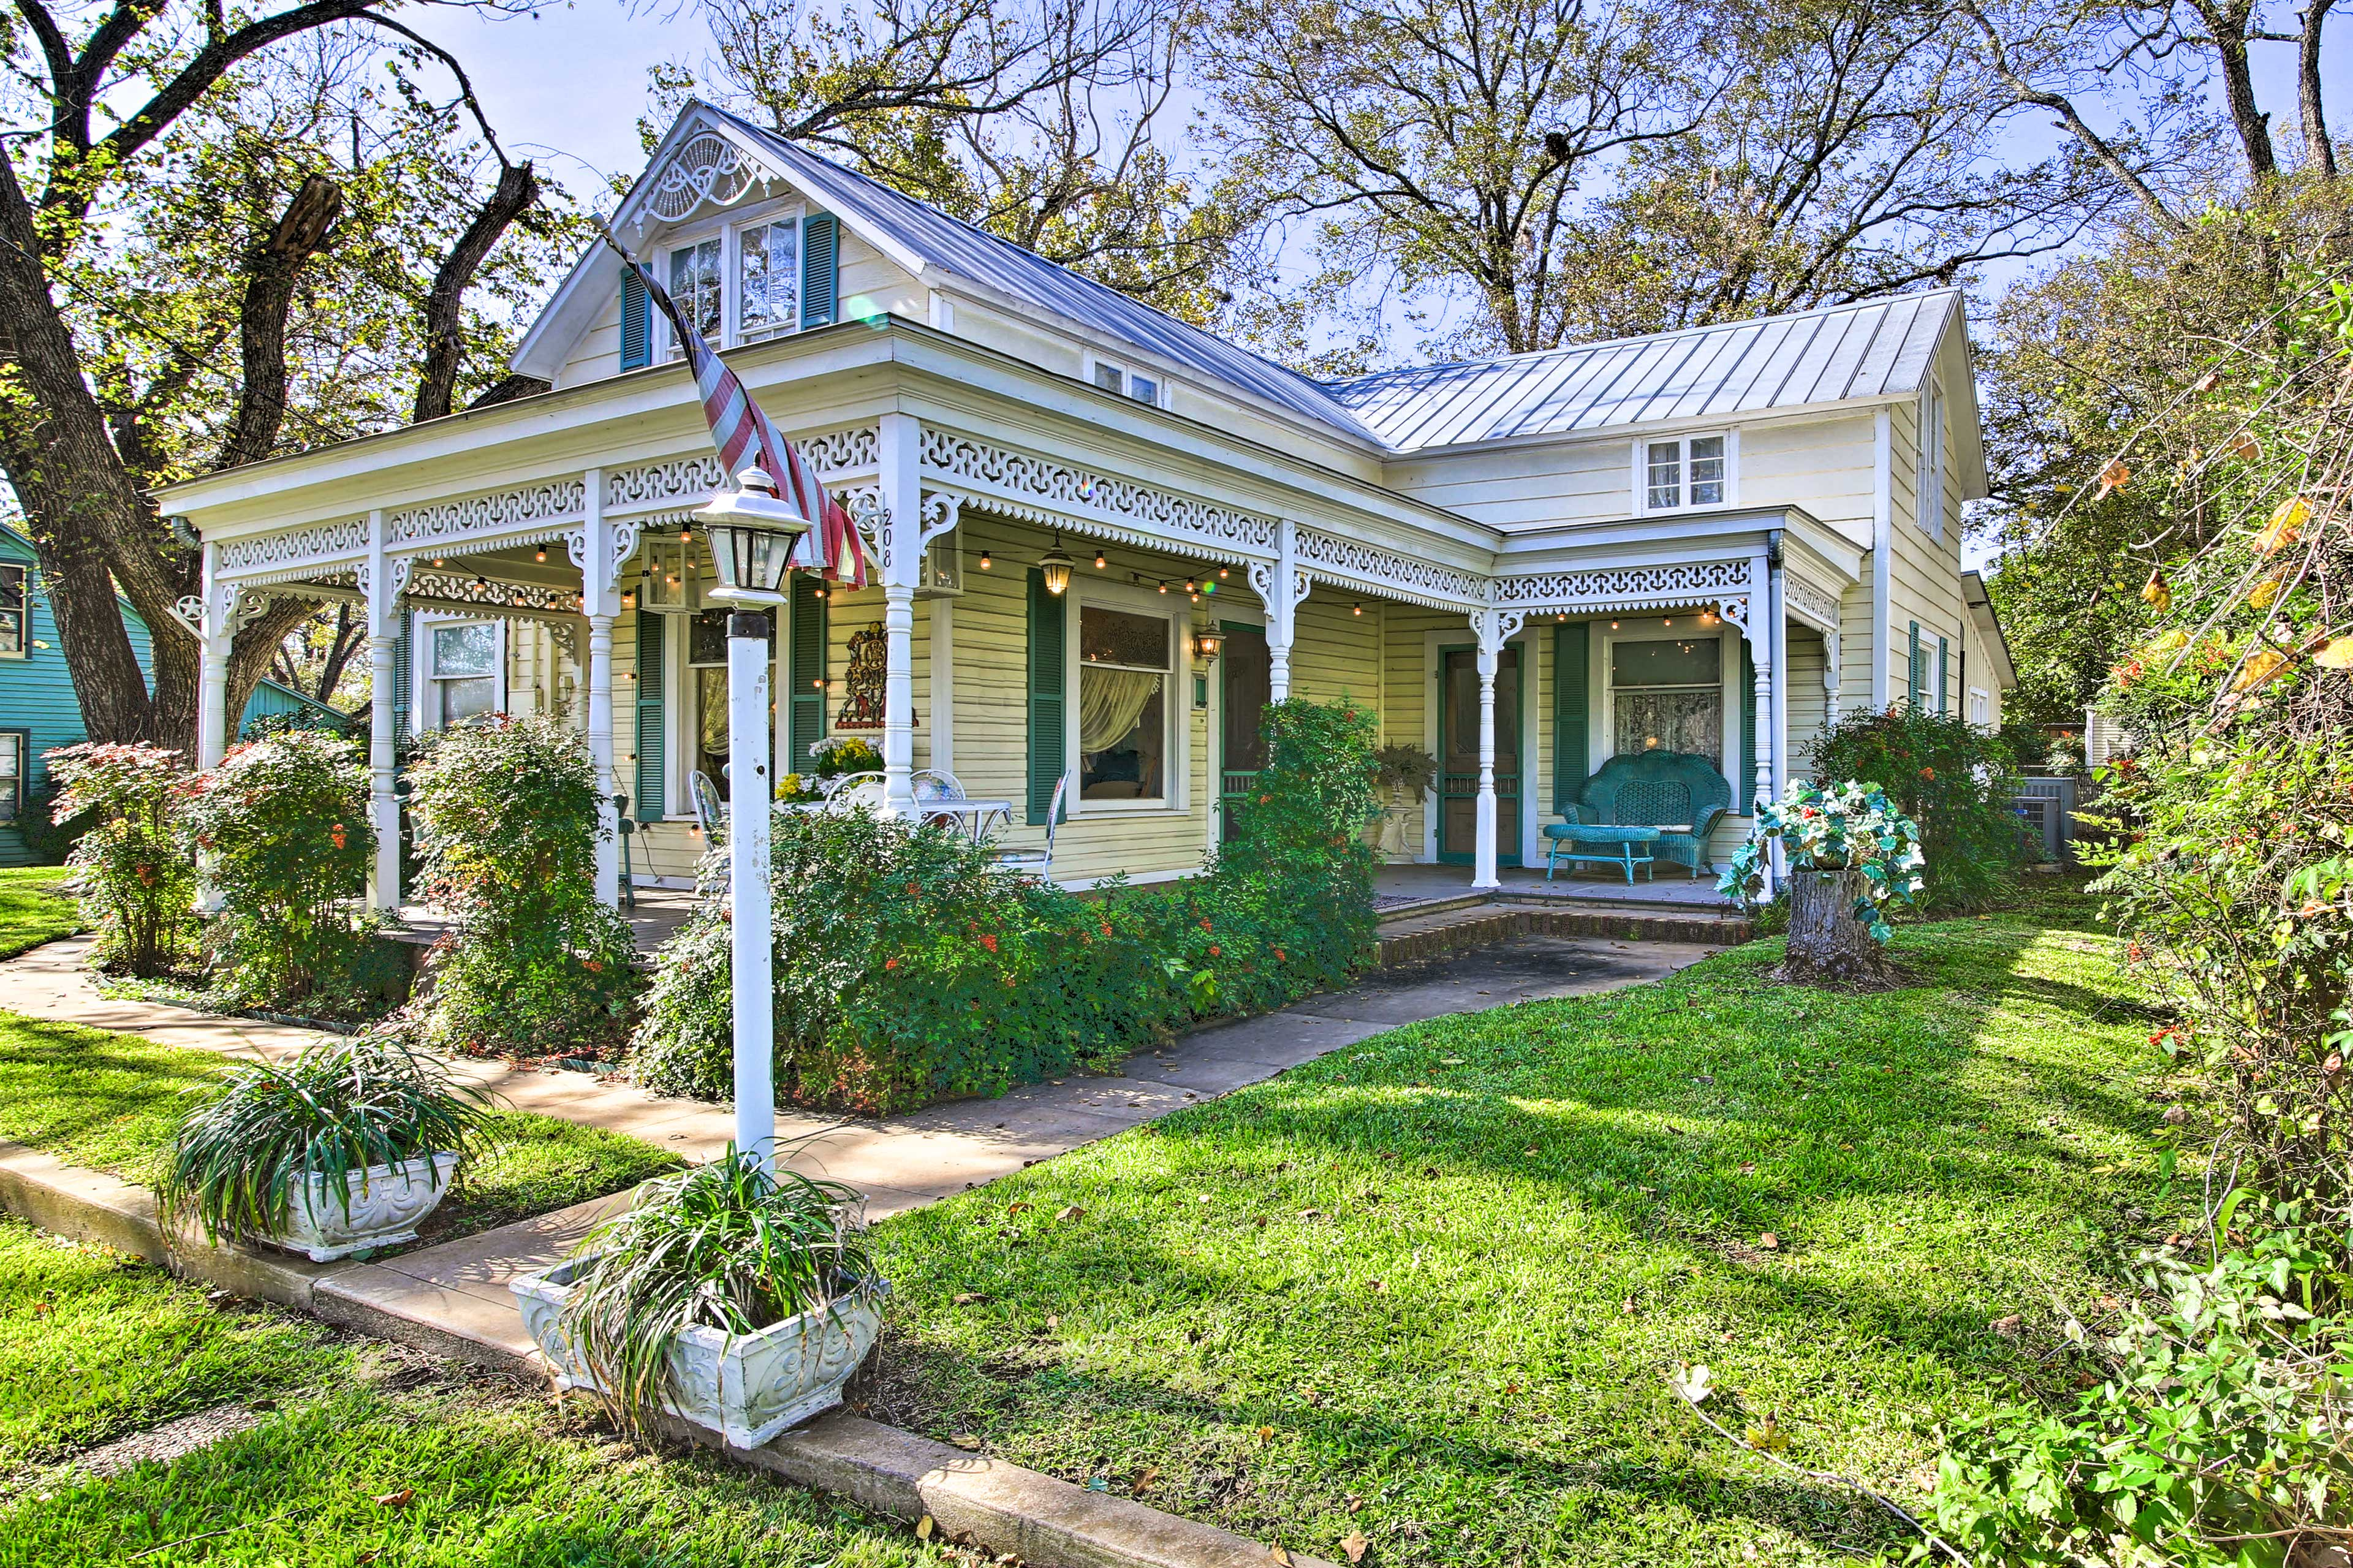 Fall in love with '1981 Grape Arbor House' in Fredericksburg.